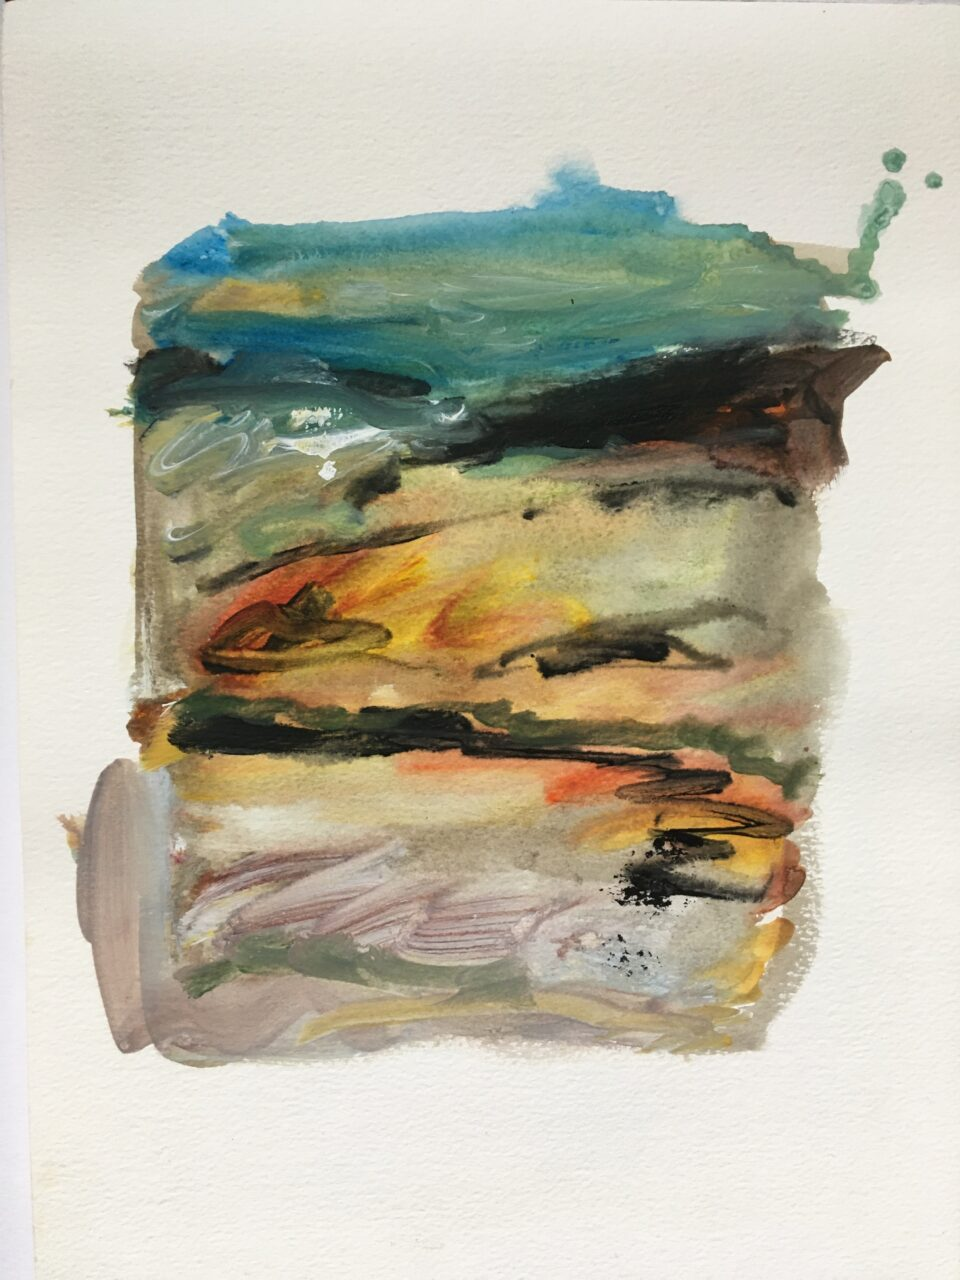 Abstract rectangular painting